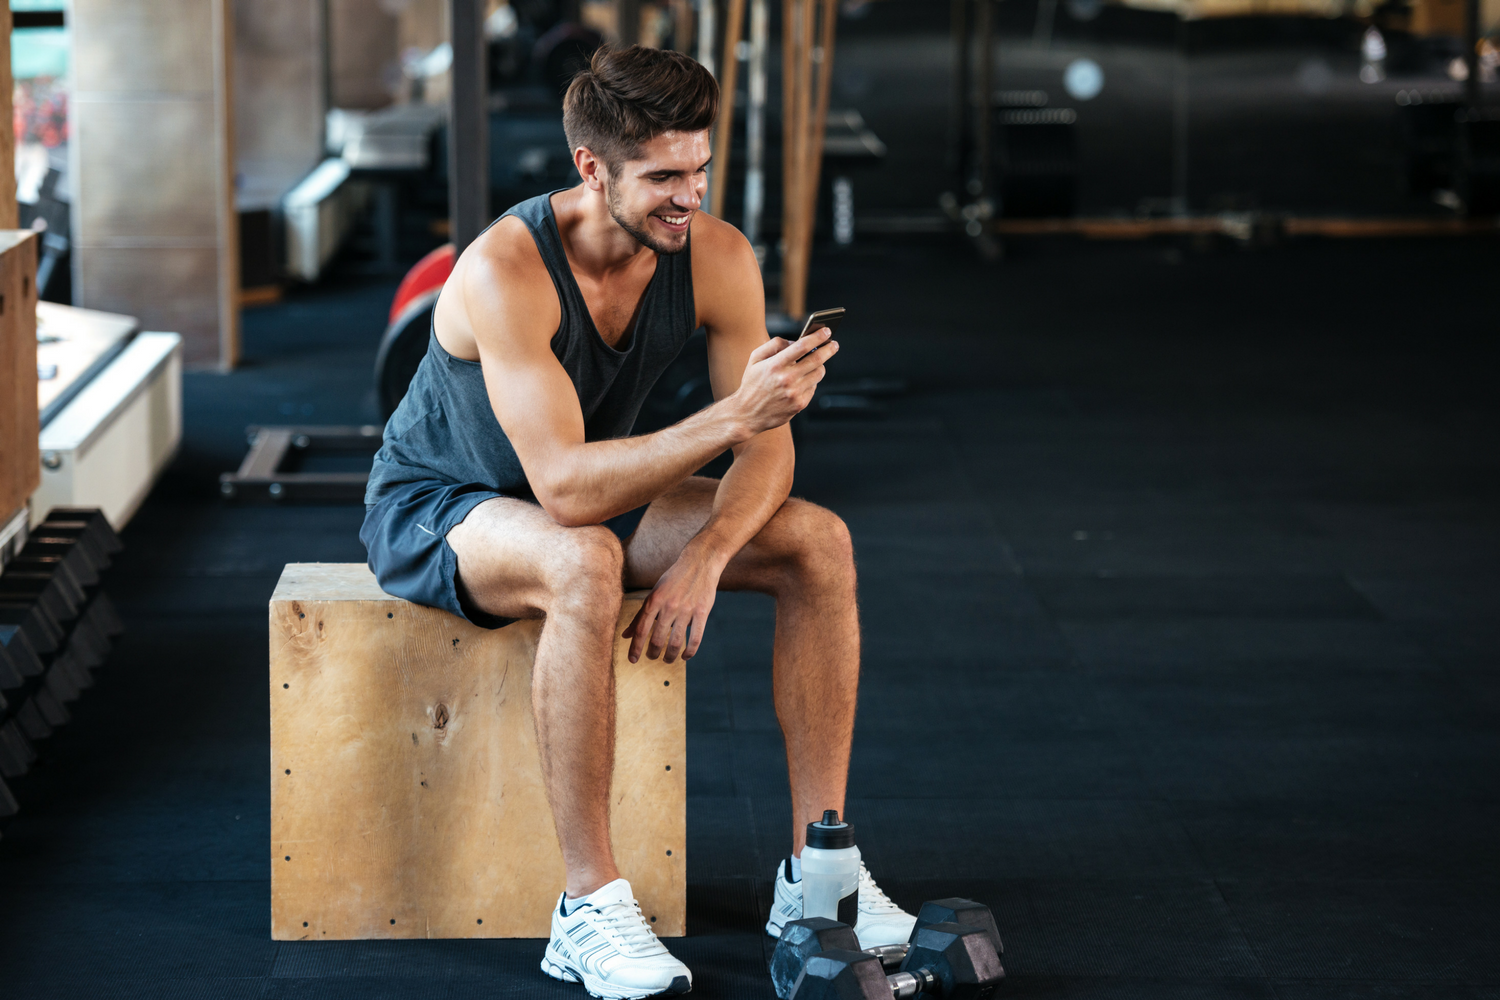 Mobile Apps - With Revolution 3 mobile apps you will have access to detailed workouts that are tailored to your fitness goals. We also have a food app to track calories and provide nutrition information. Mobile apps are another great benefit from being a Revolution 3 client.